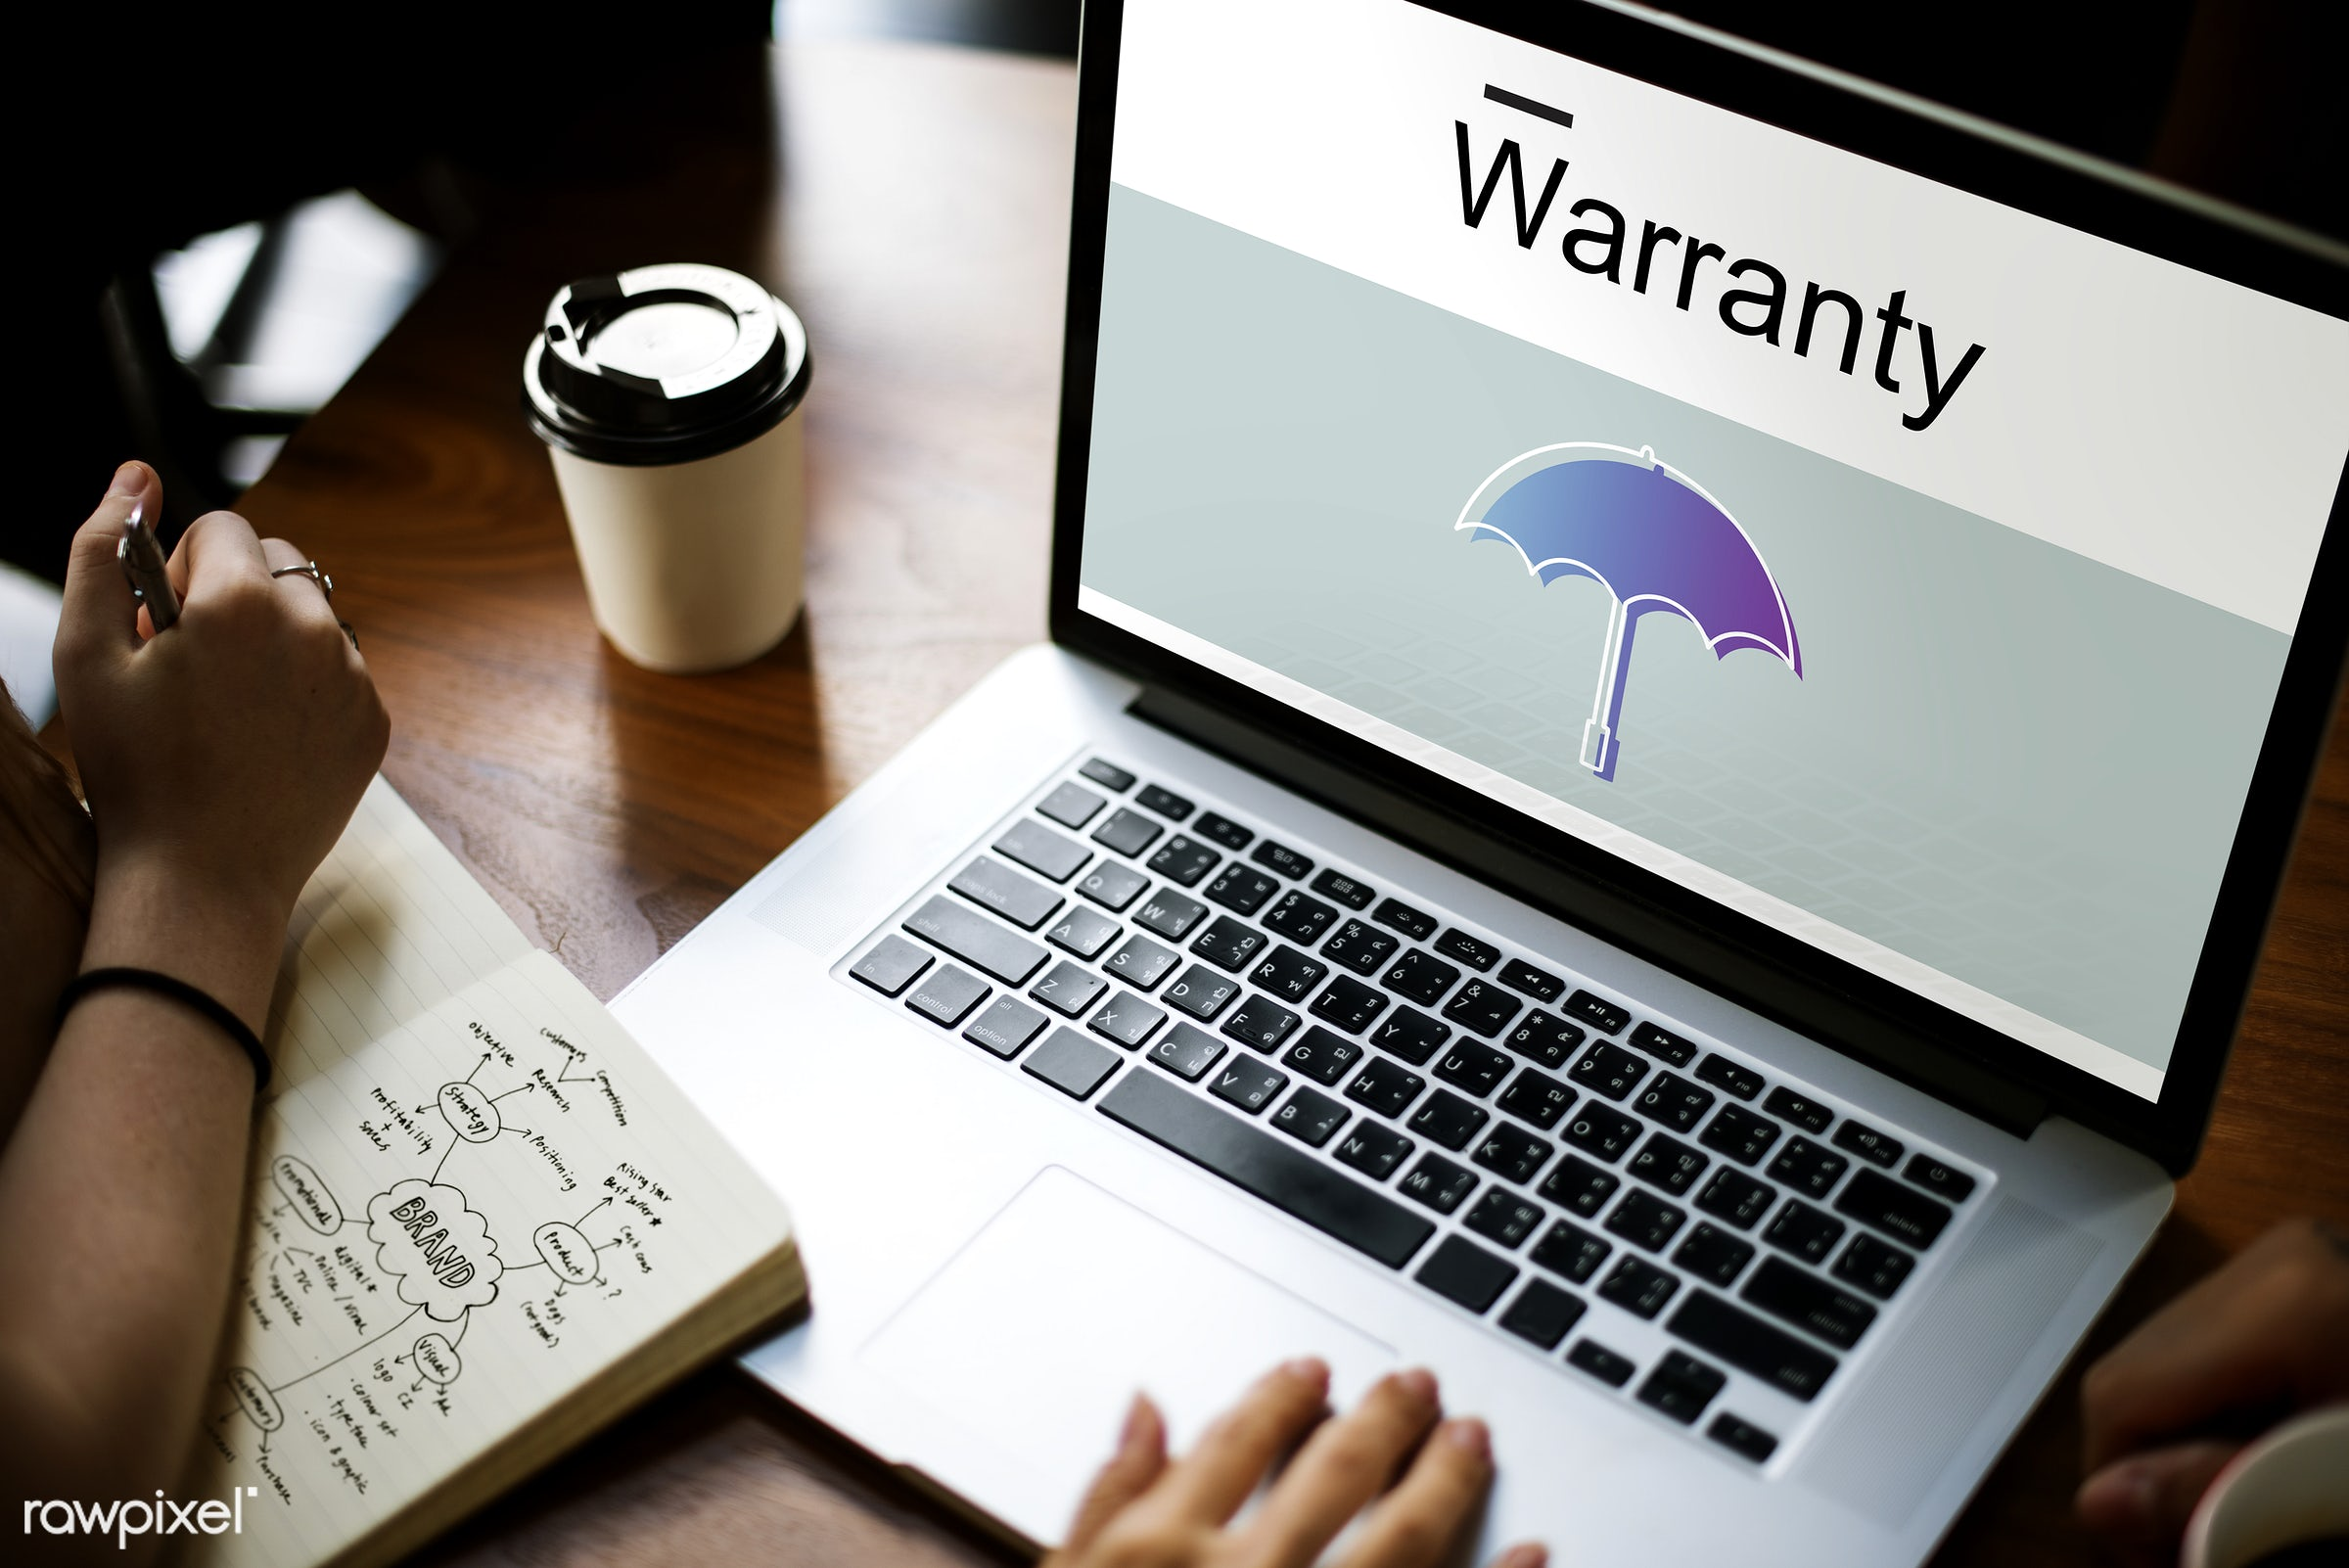 assurance, browsing, coffee cup, defend, defense, device, digital, digital device, encryption, graphic, guarantee, guard,...